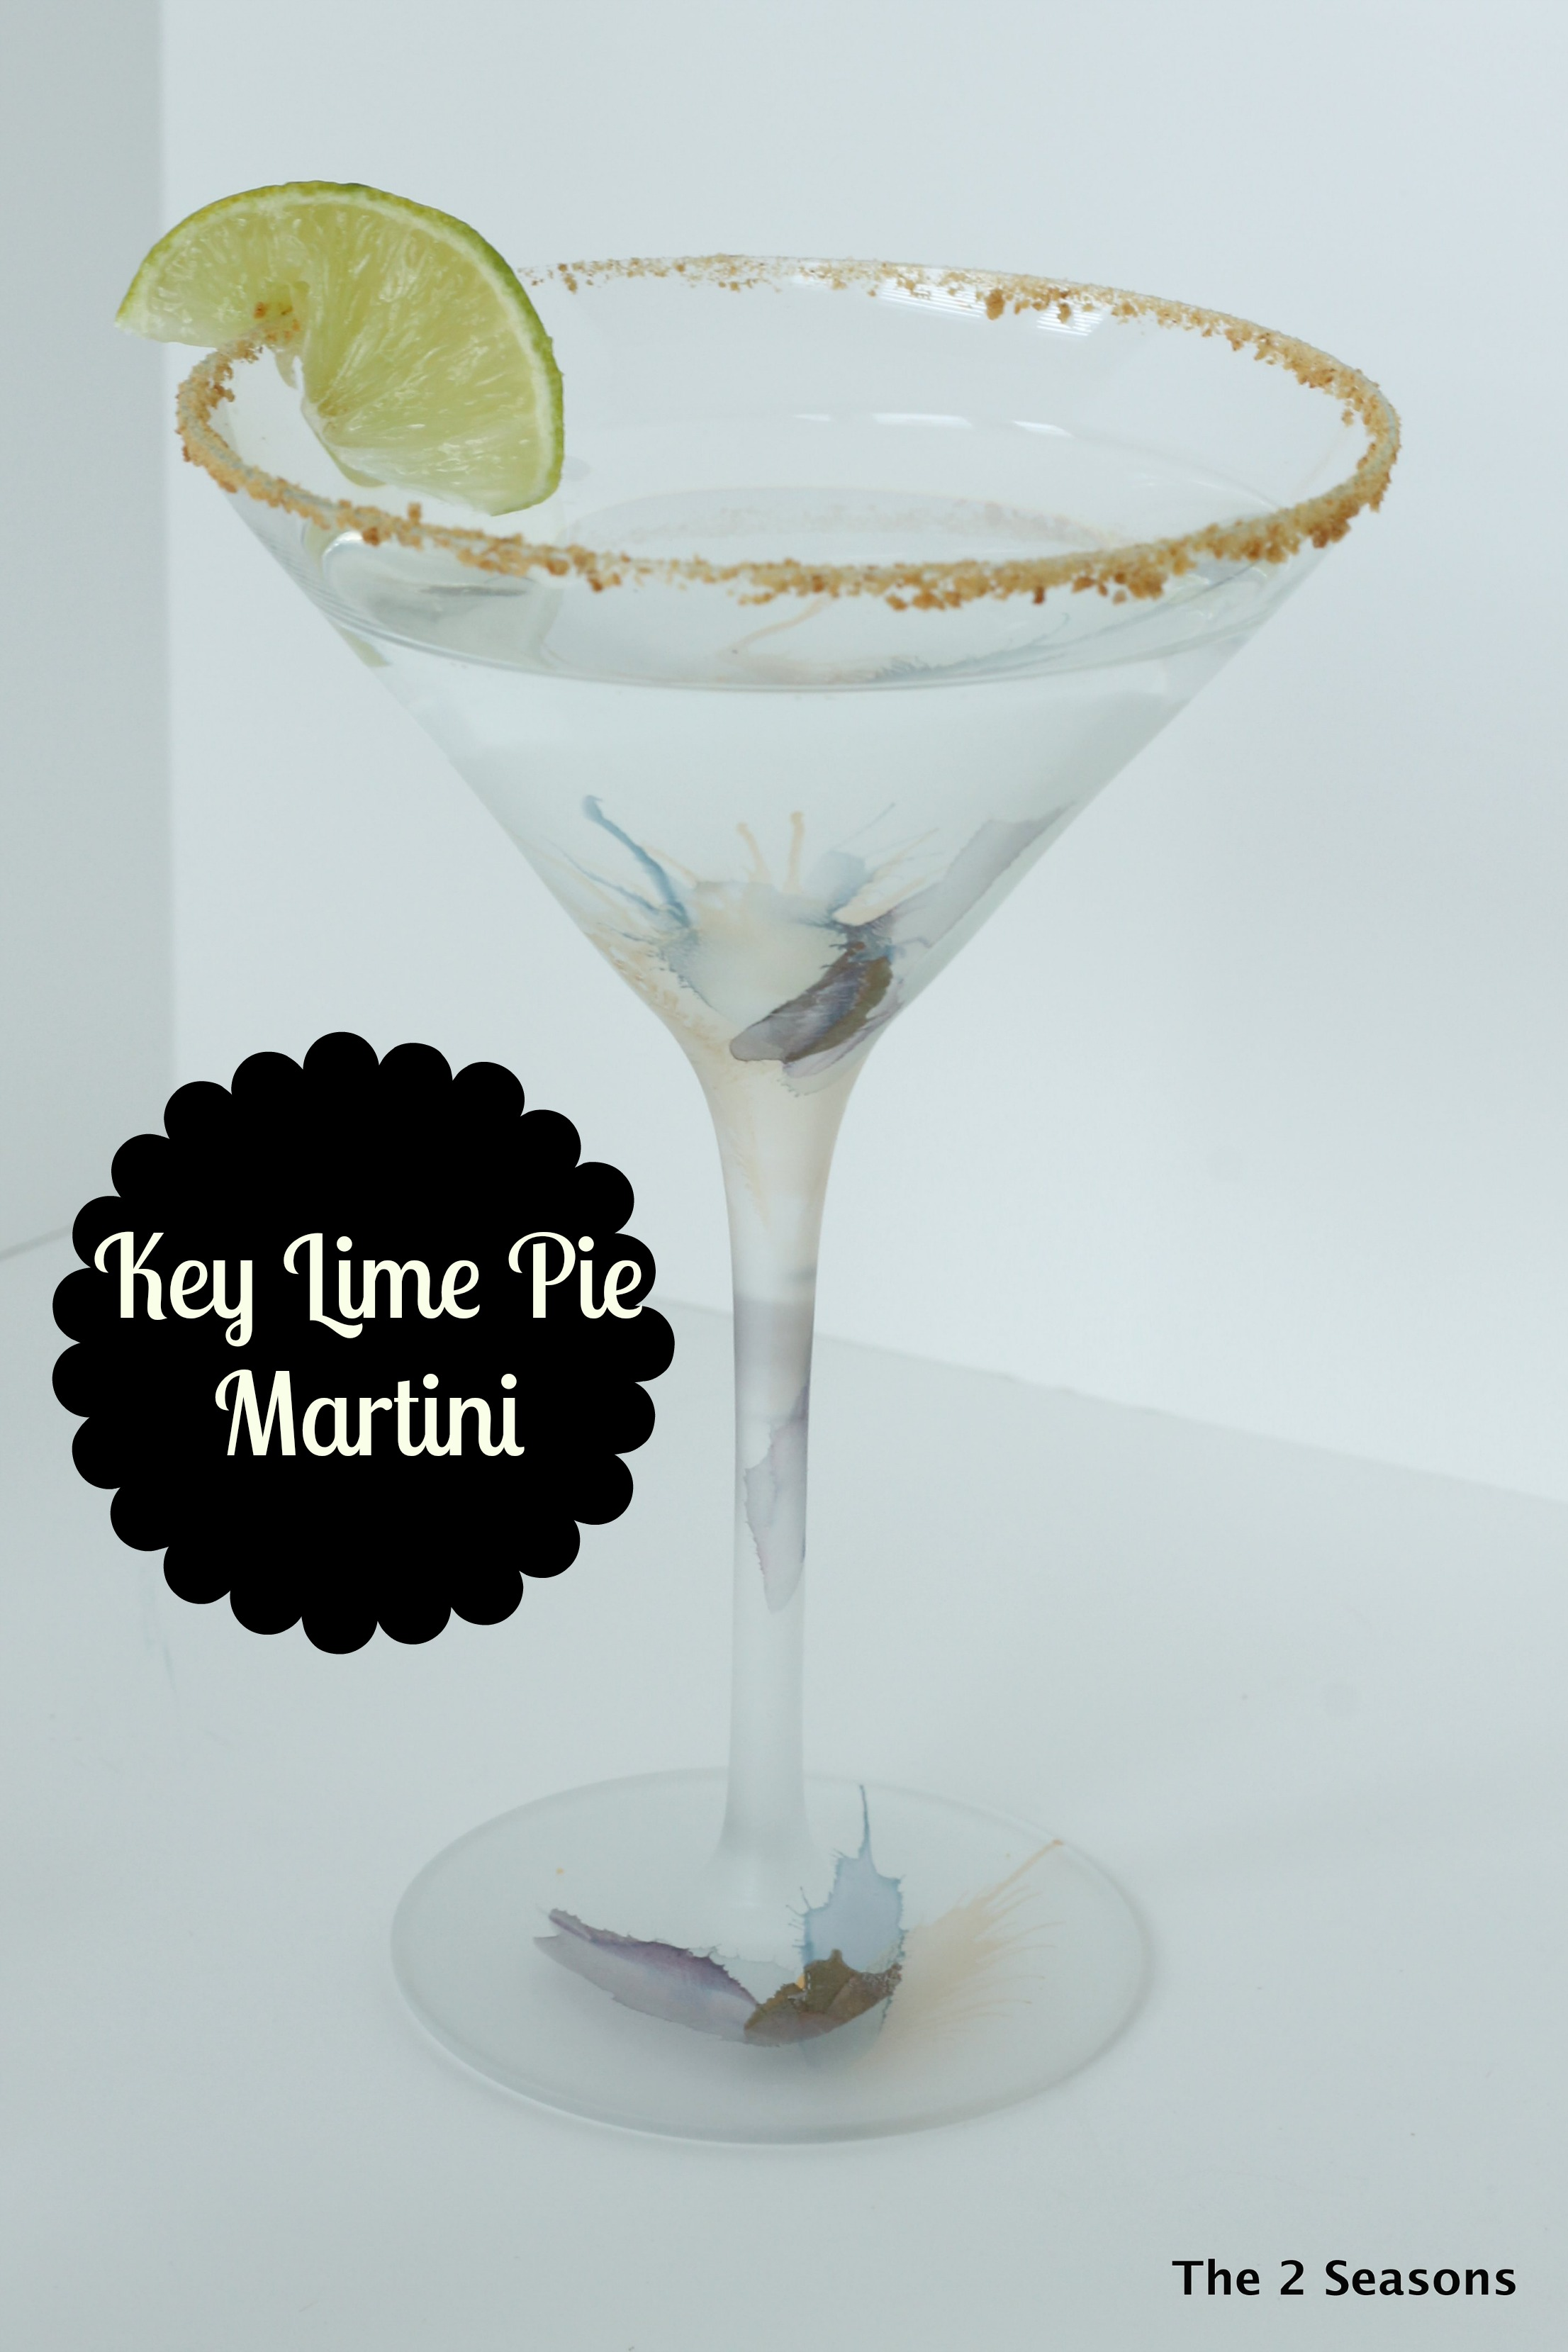 Martini.jpg - Key Lime Pie Martini